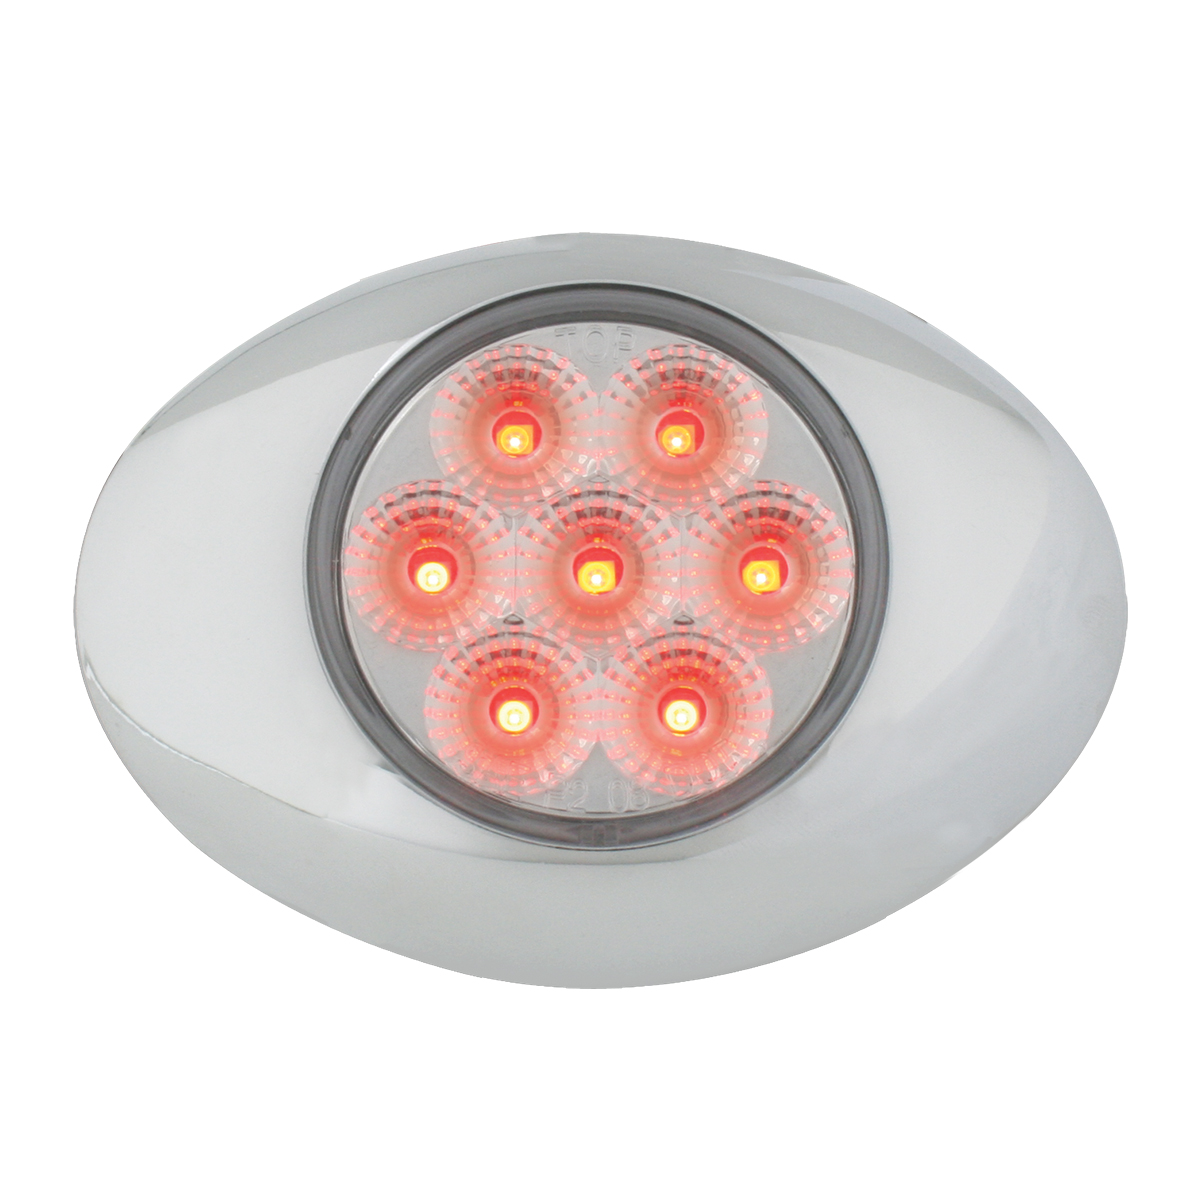 76198 Small Low Profile Surface Mount Spyder LED Marker & Turn Light w/ Chrome Bezel